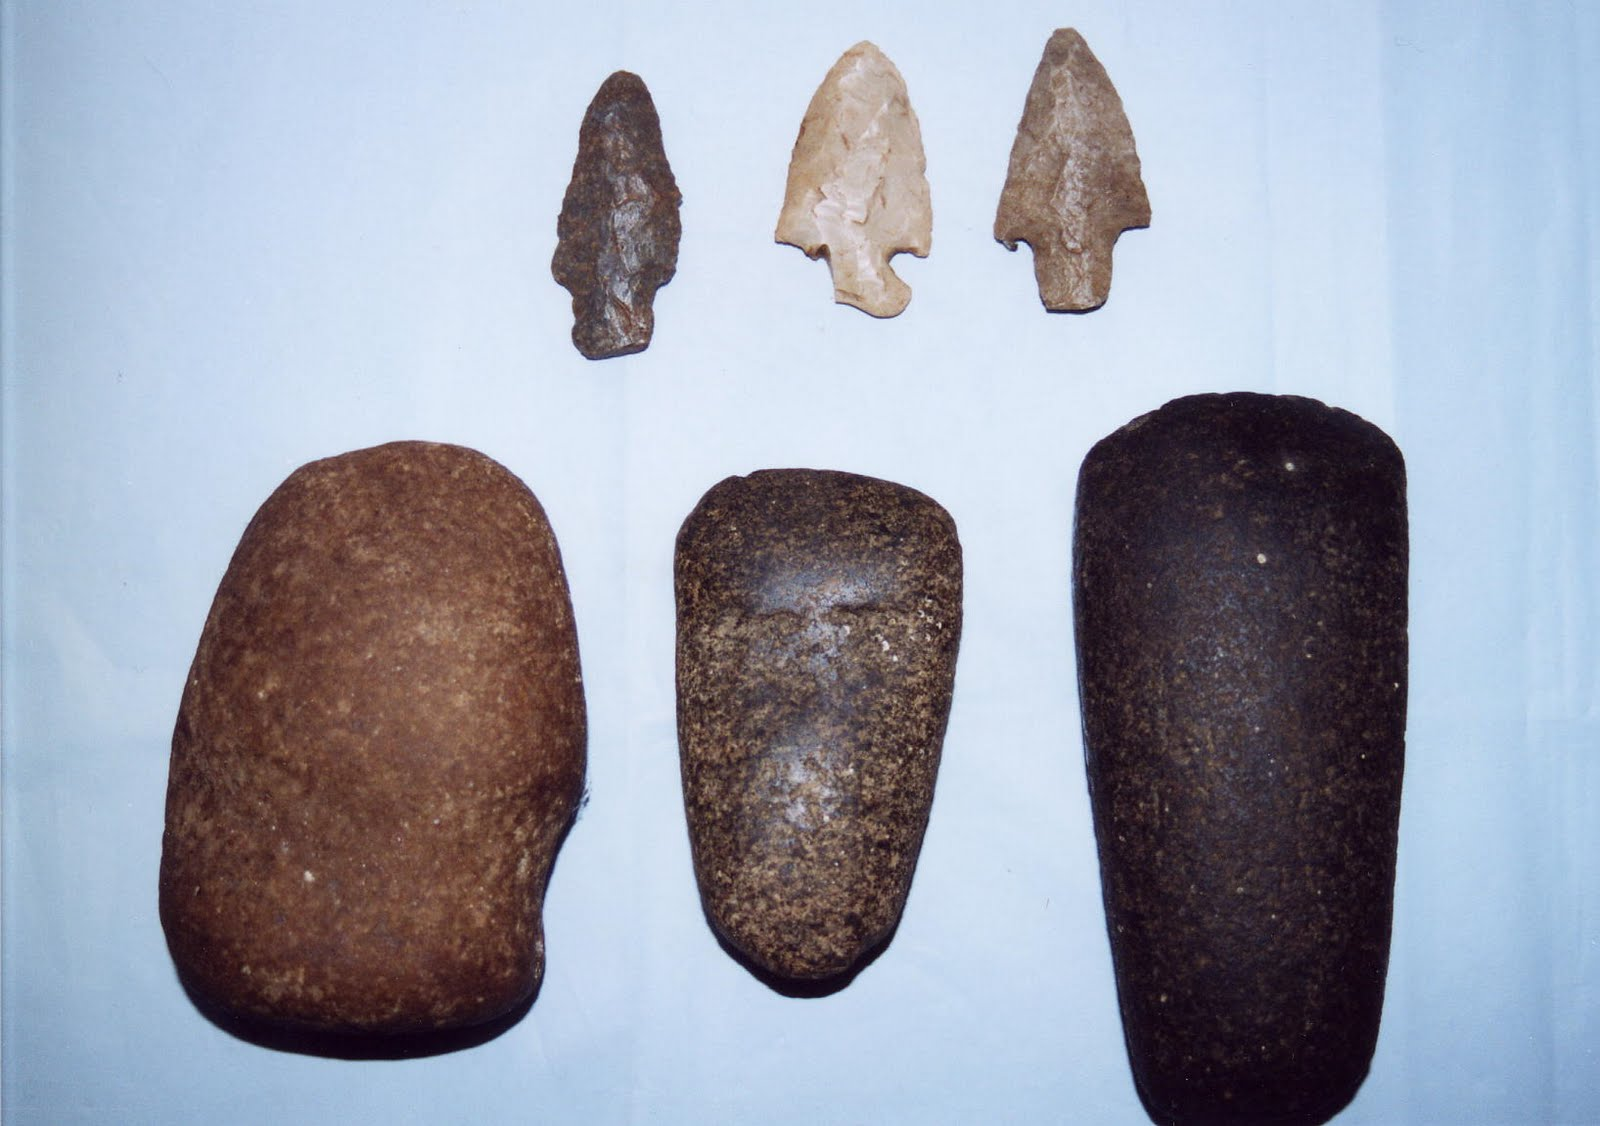 Photo: From dating these arrowheads and scrapers that were found on the shores of Lake Pogamasing, archeologist Chris Hanks believed that Aboriginals lived in the area for several centuries. The first confirmed habitation was that of the Espagnol family who began living on Pog in 1857. (Gail and Cy Tulk)